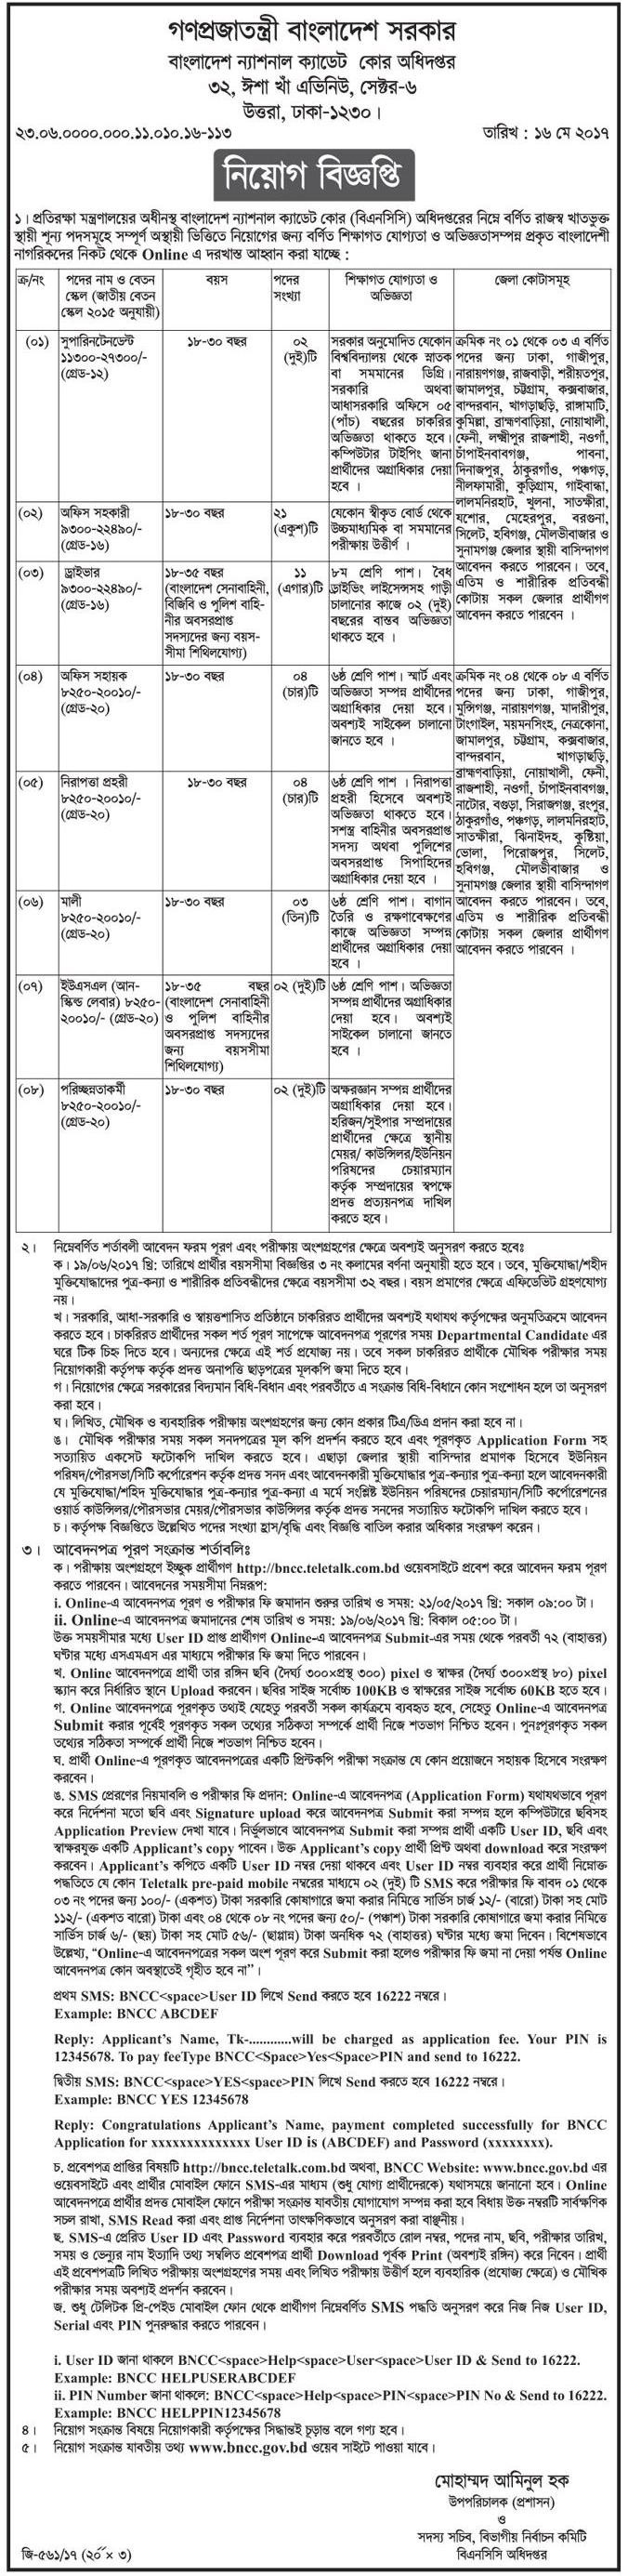 National Cadet Corps Directorate Job Circular 2017